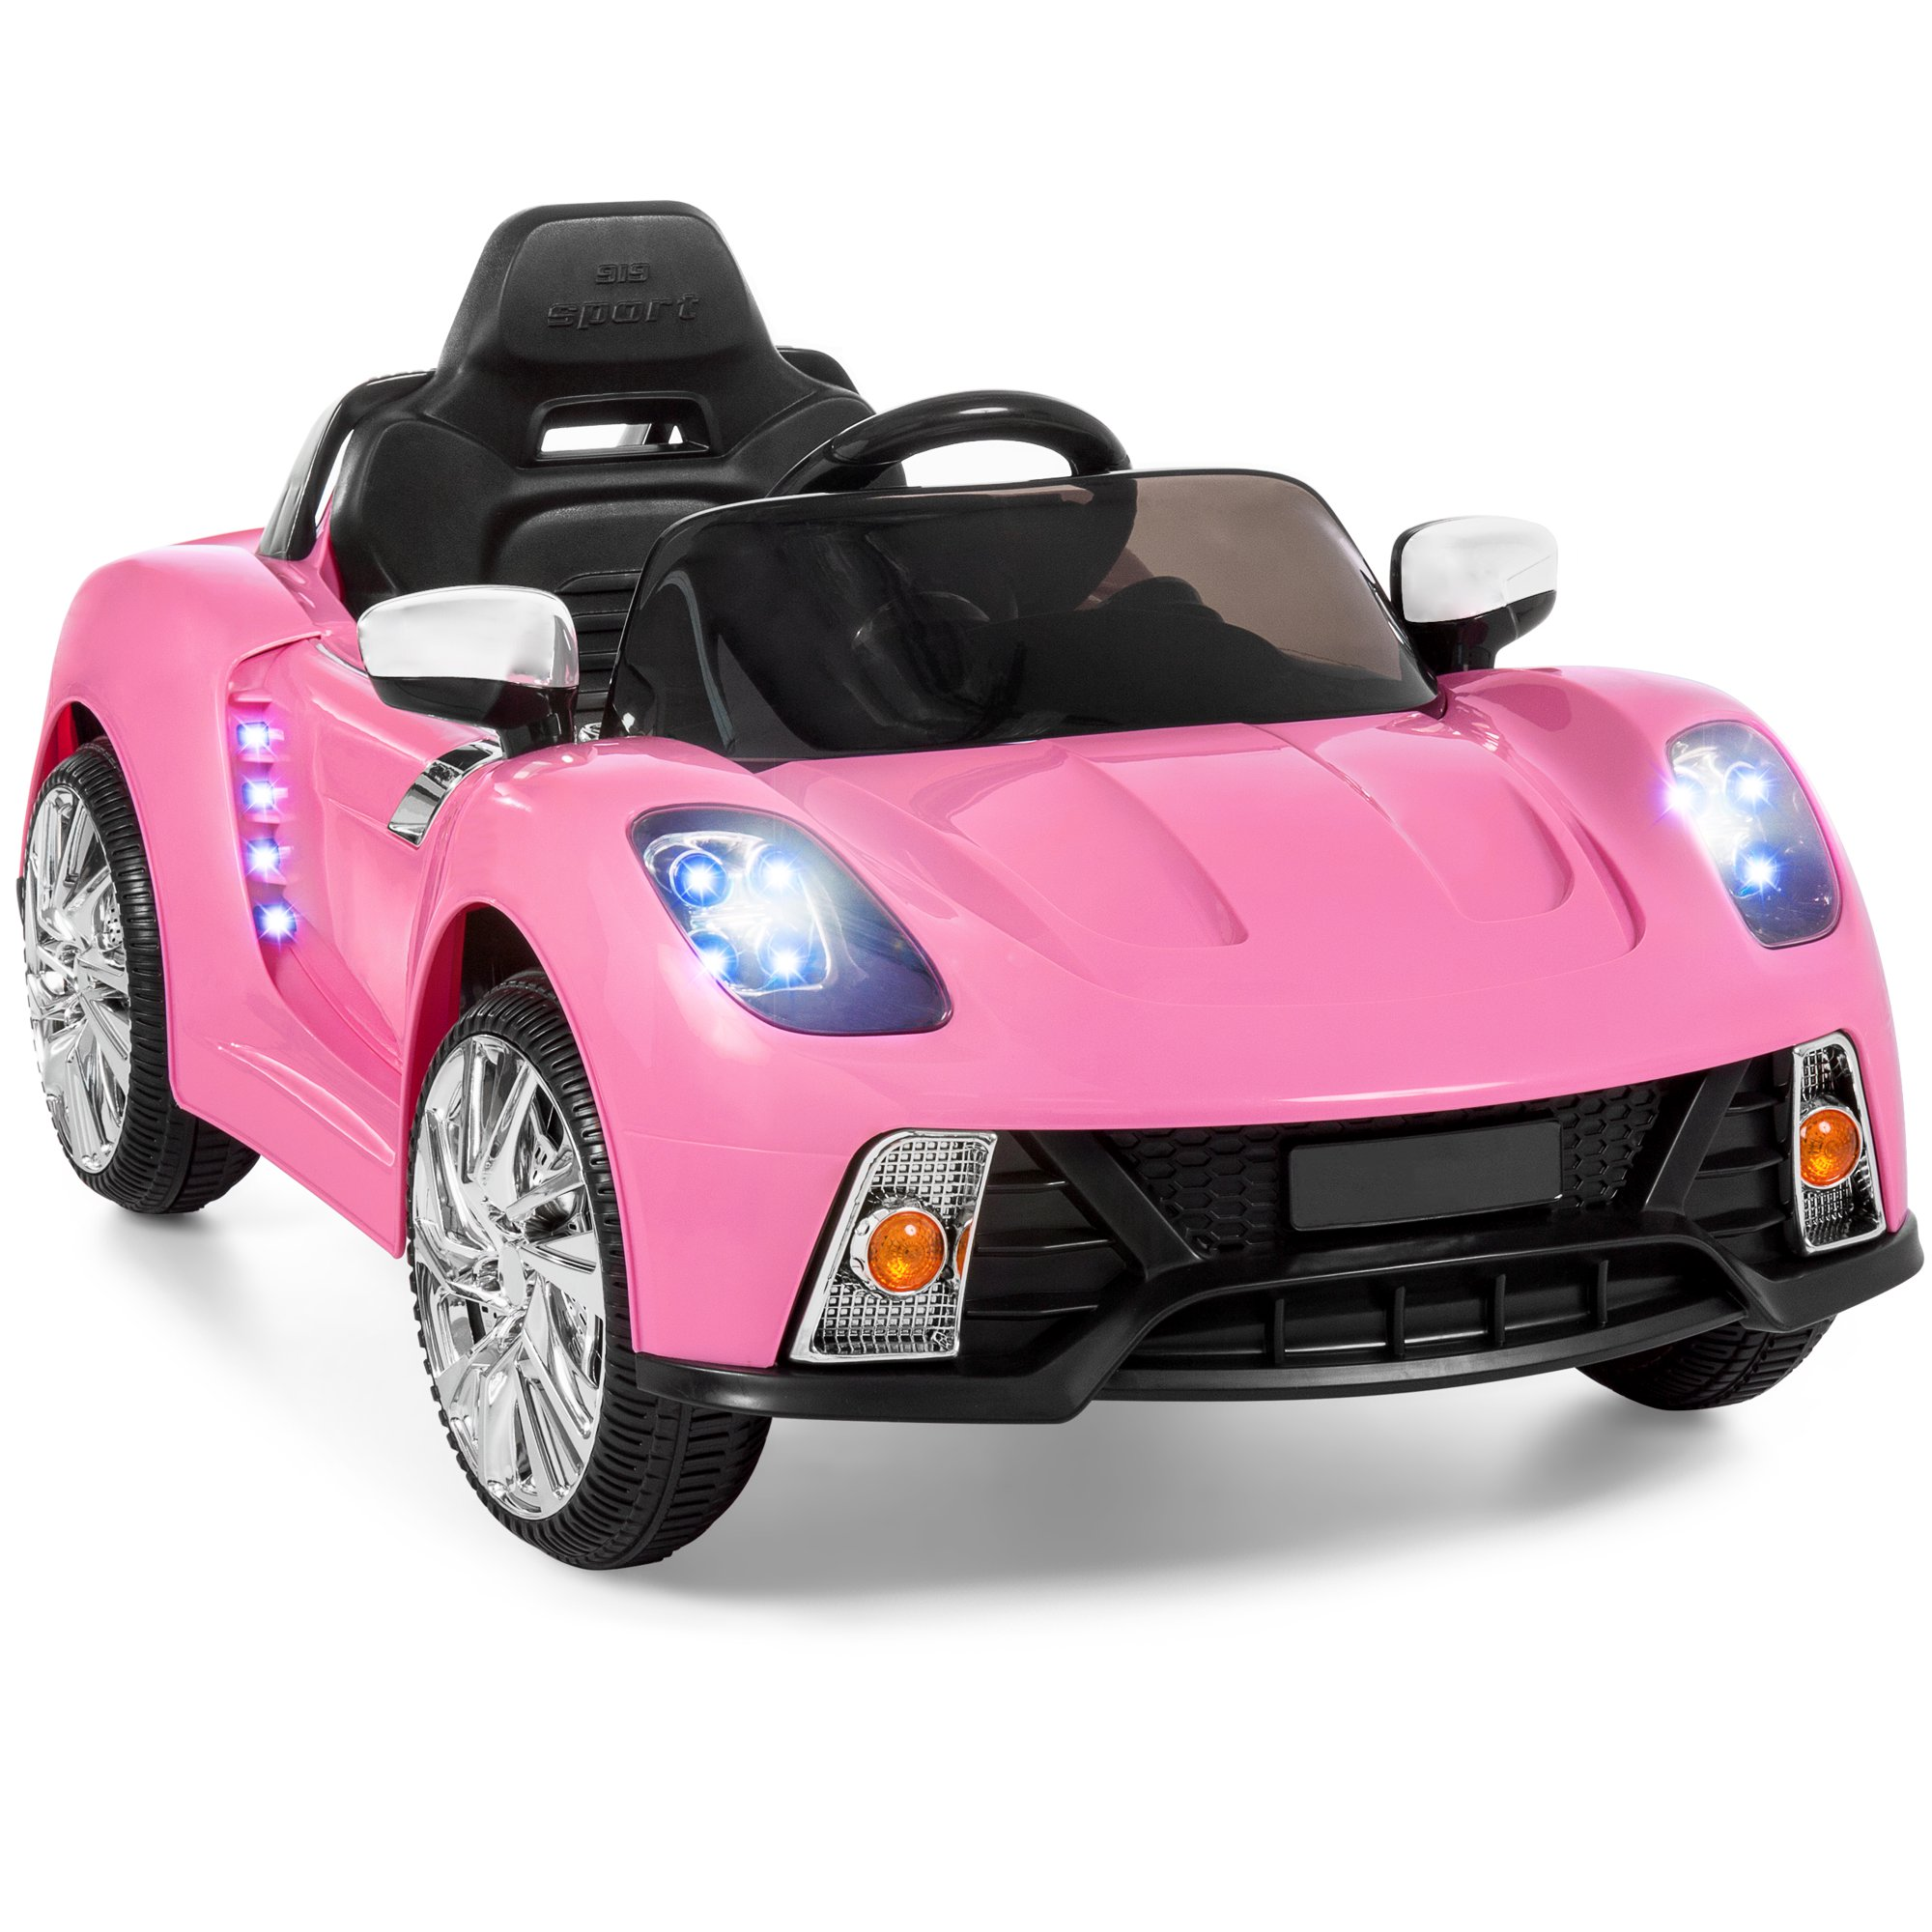 12V Kids Battery Powered Remote-control Electric RC Ride-on Car w/ LED Lights, MP3, AUX – Pink